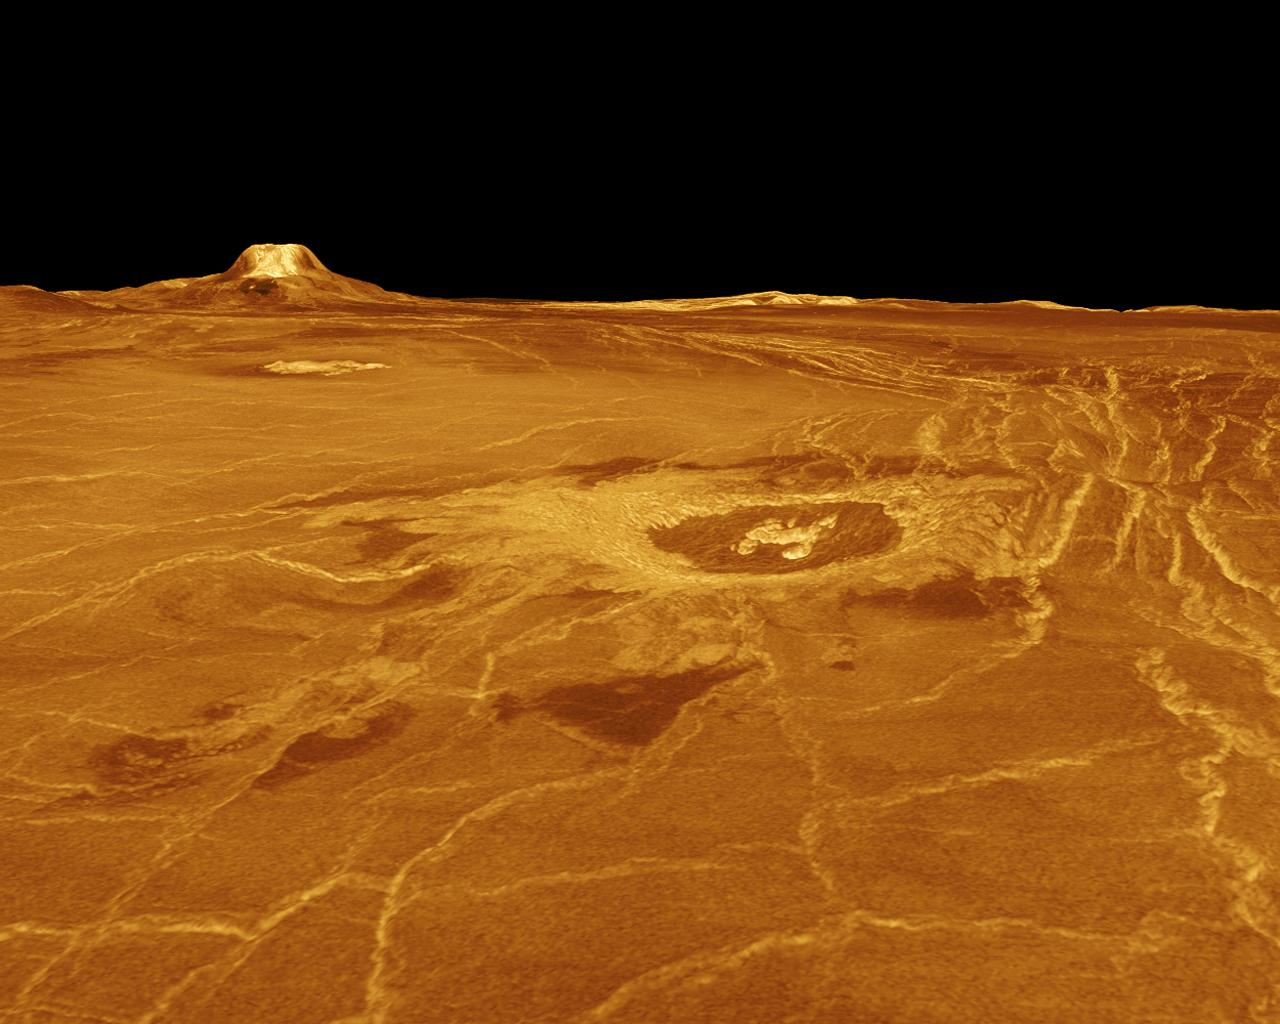 A portion of western Eistla Regio is displayed in this three-dimensional perspective view of the surface of Venus as seen by NASA's Magellan spacecraft.